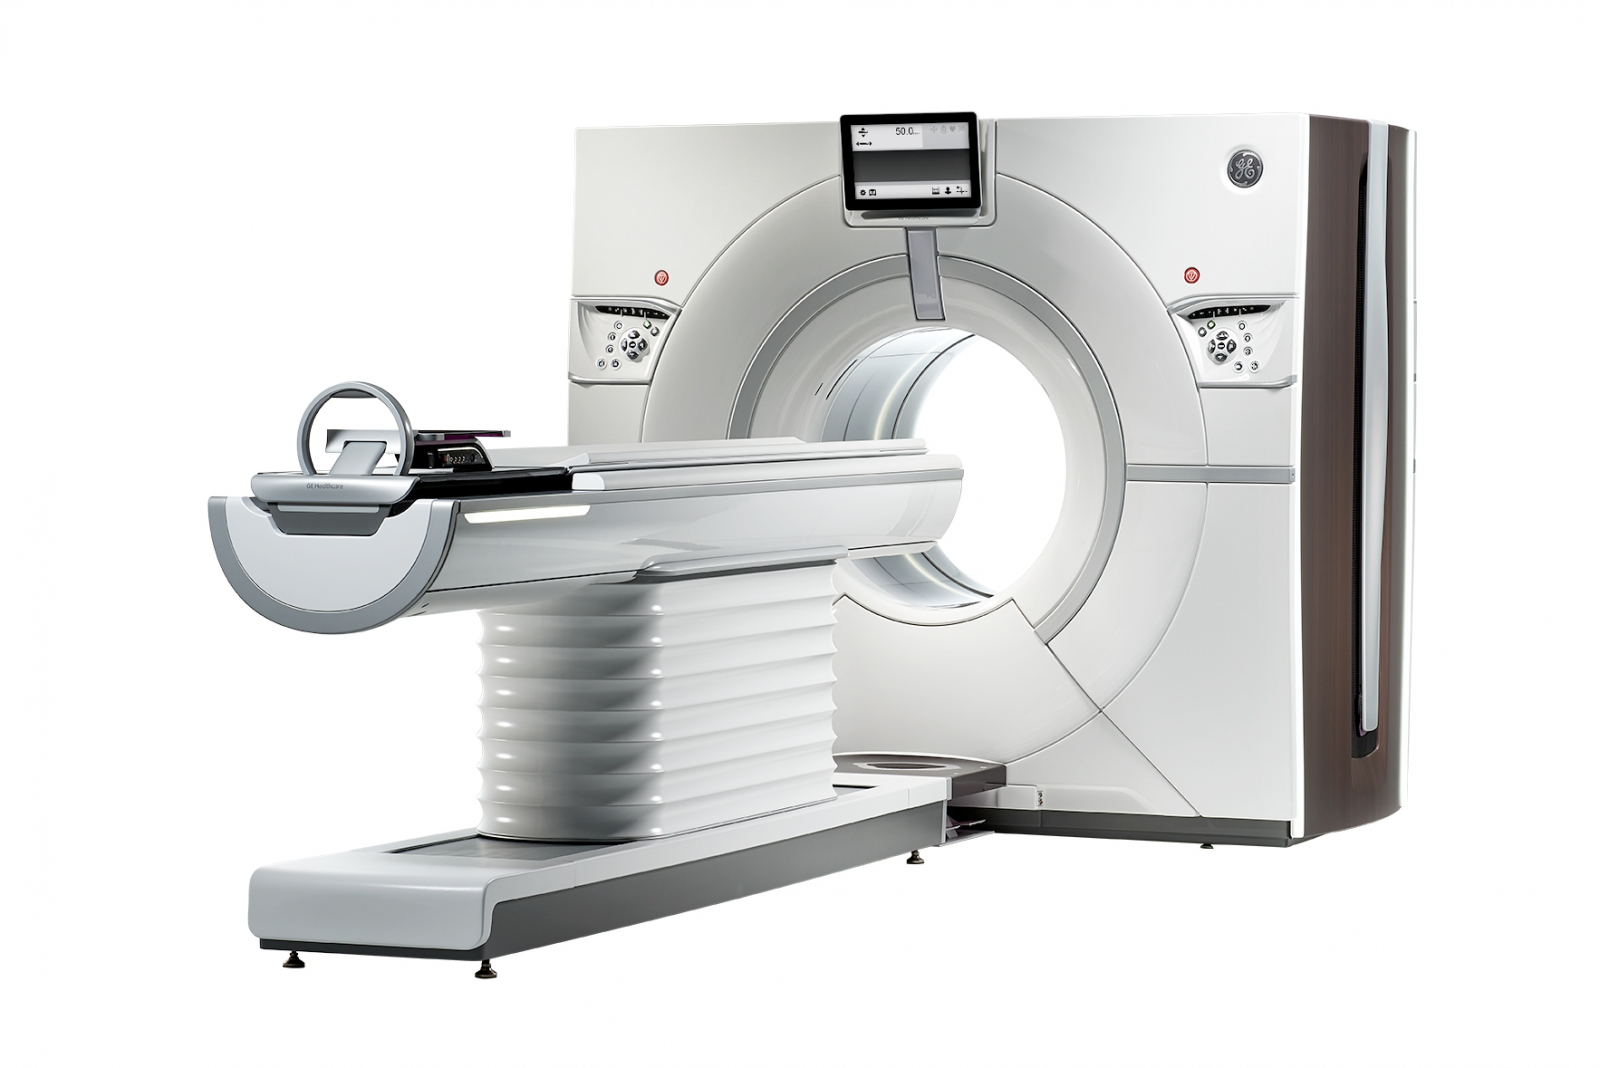 Revolution CT - new CT scanning technology that has been approved by the FDA